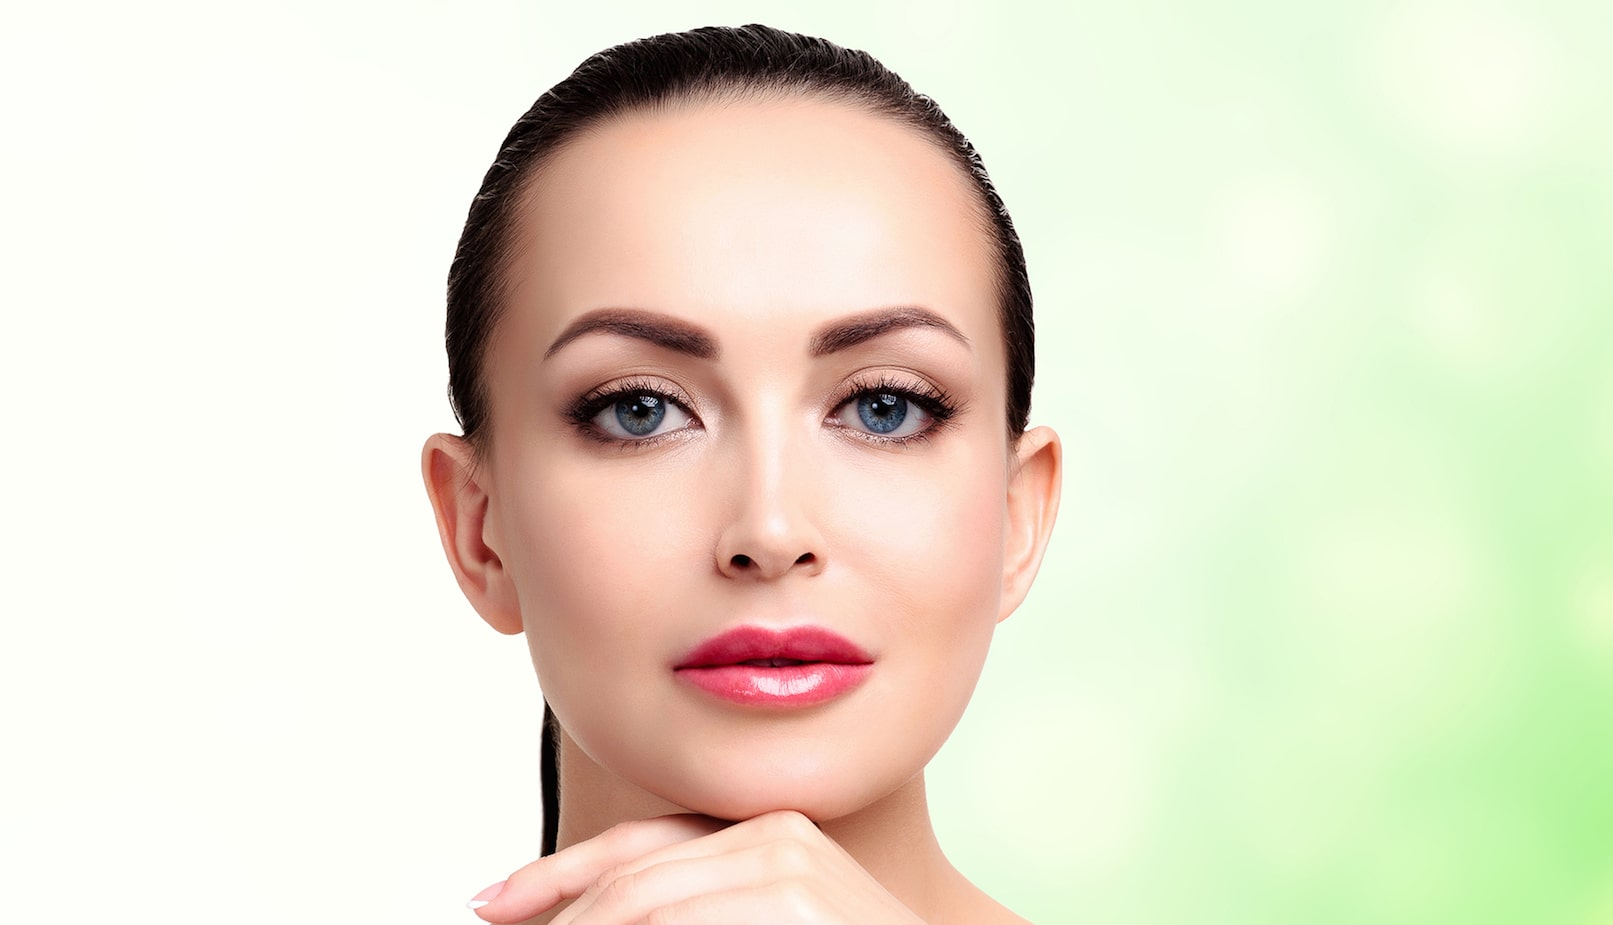 Learn more about the non-surgical alternatives to a facelift